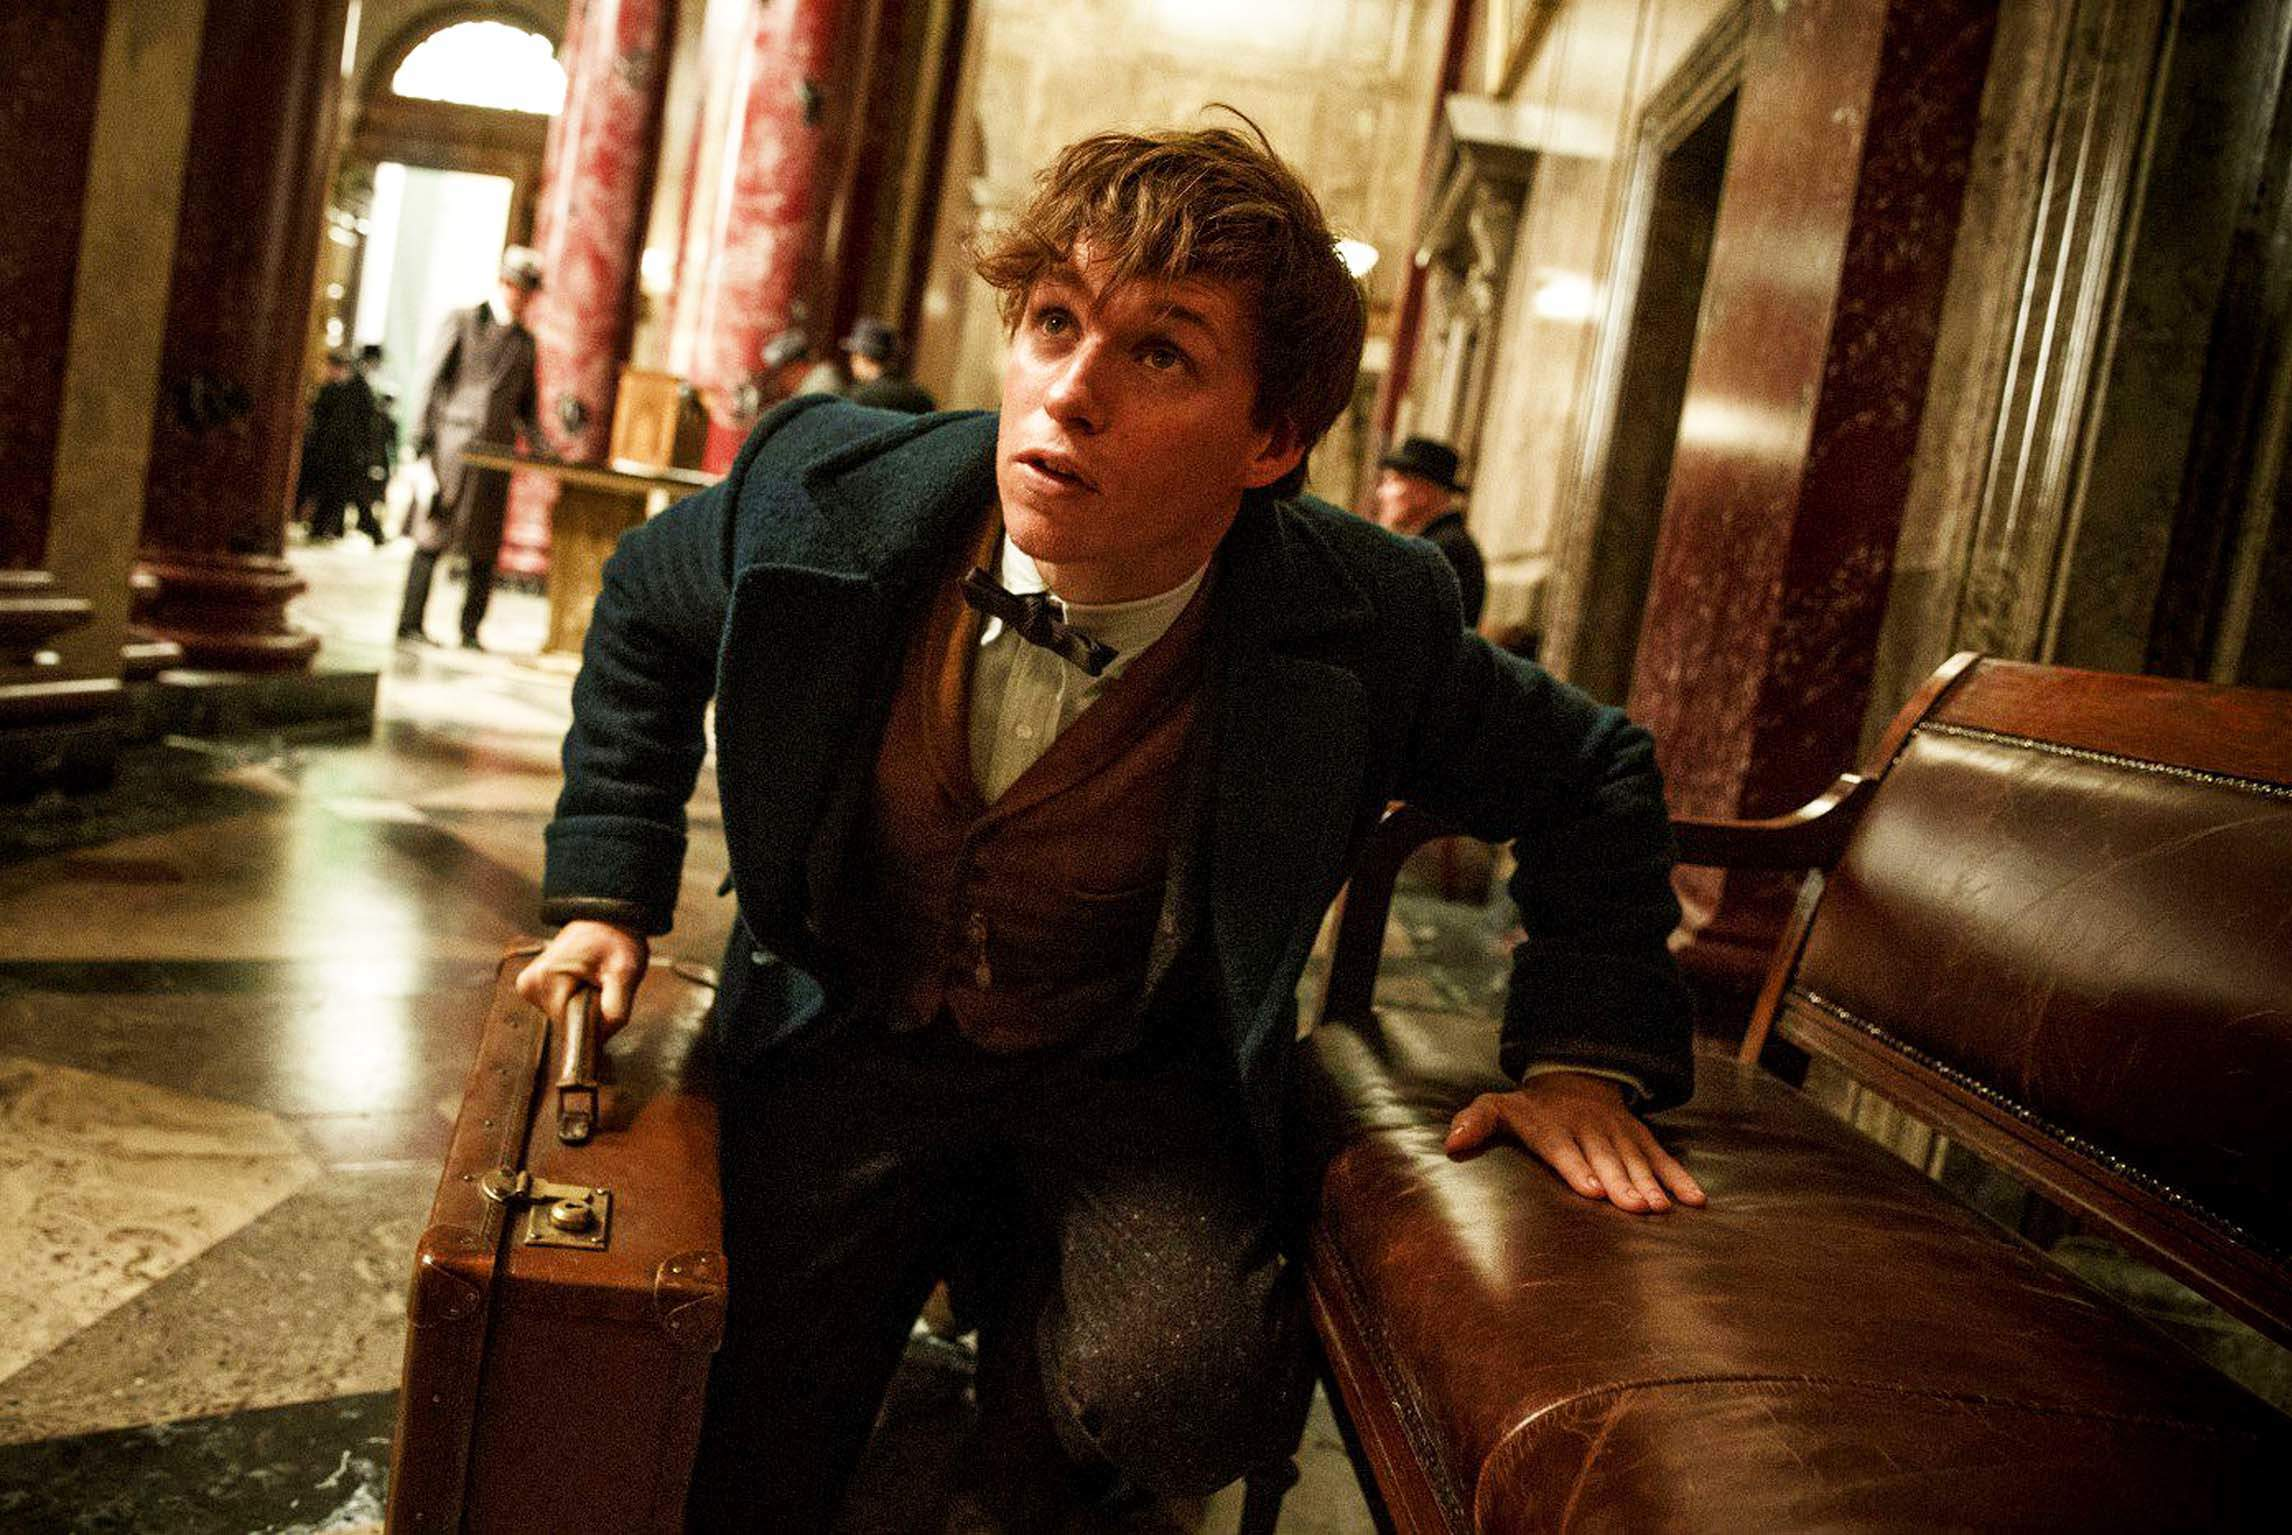 Is Fantastic Beasts a stretch too far for JK Rowling's imagination?